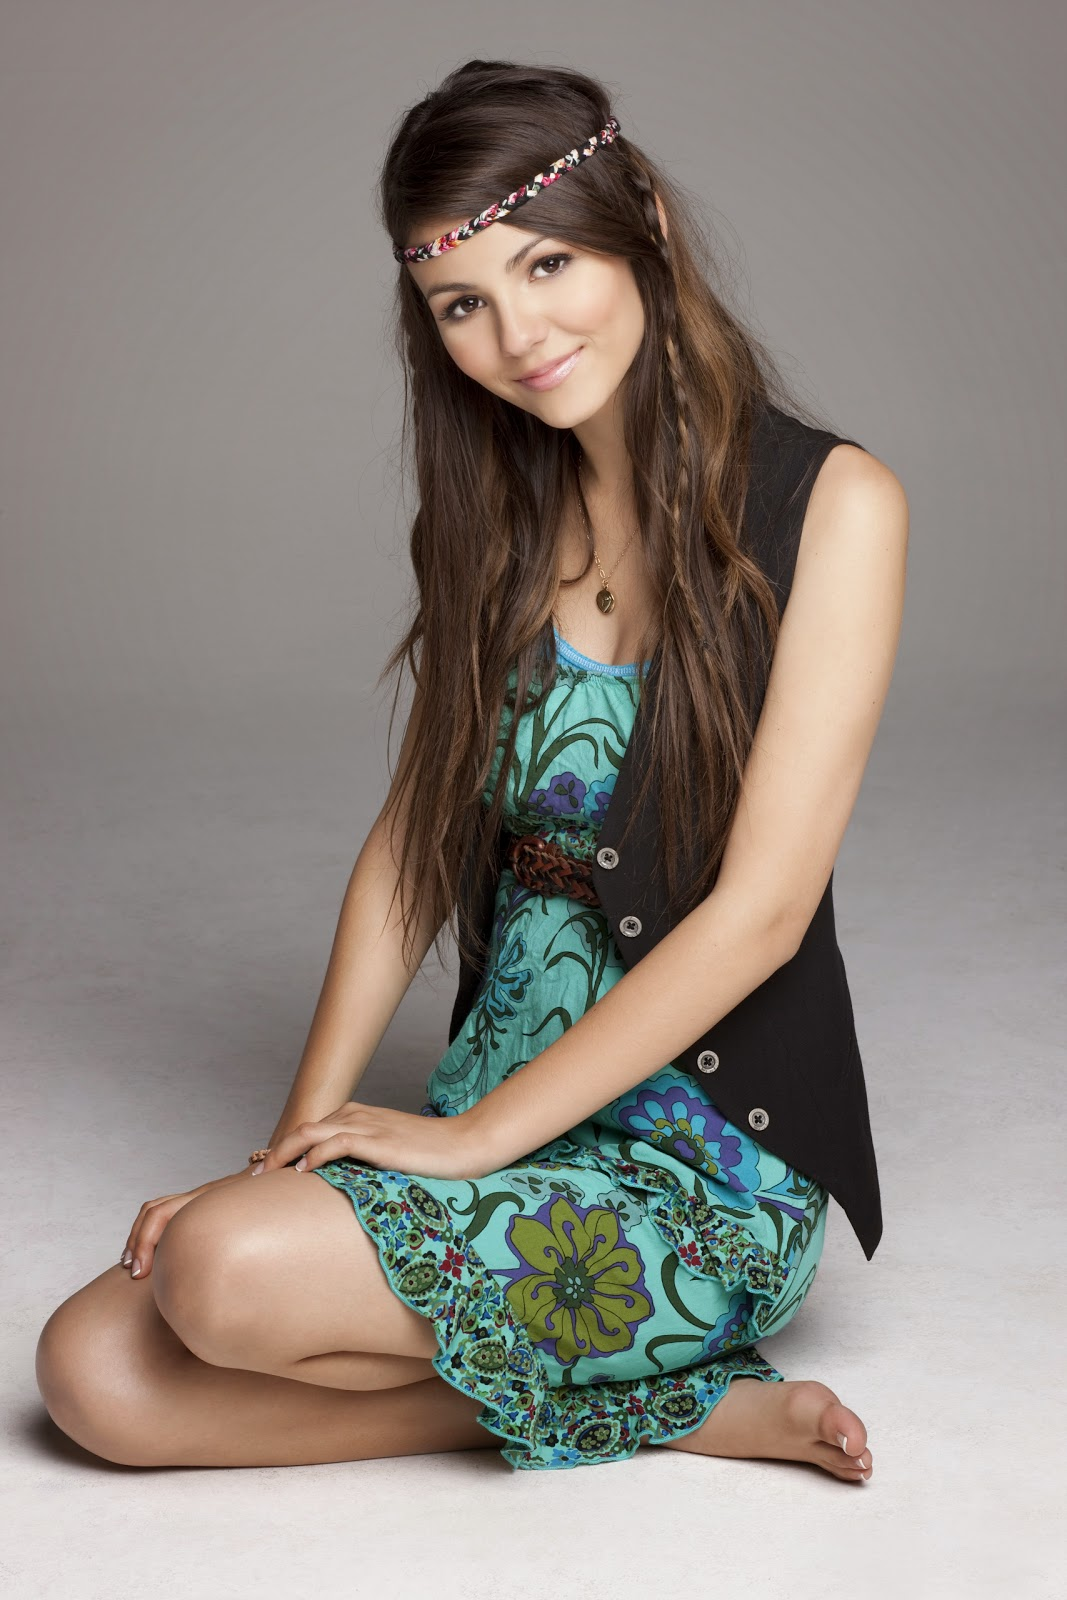 Nickelodeon Star Victoria Justice To Take Legal Action